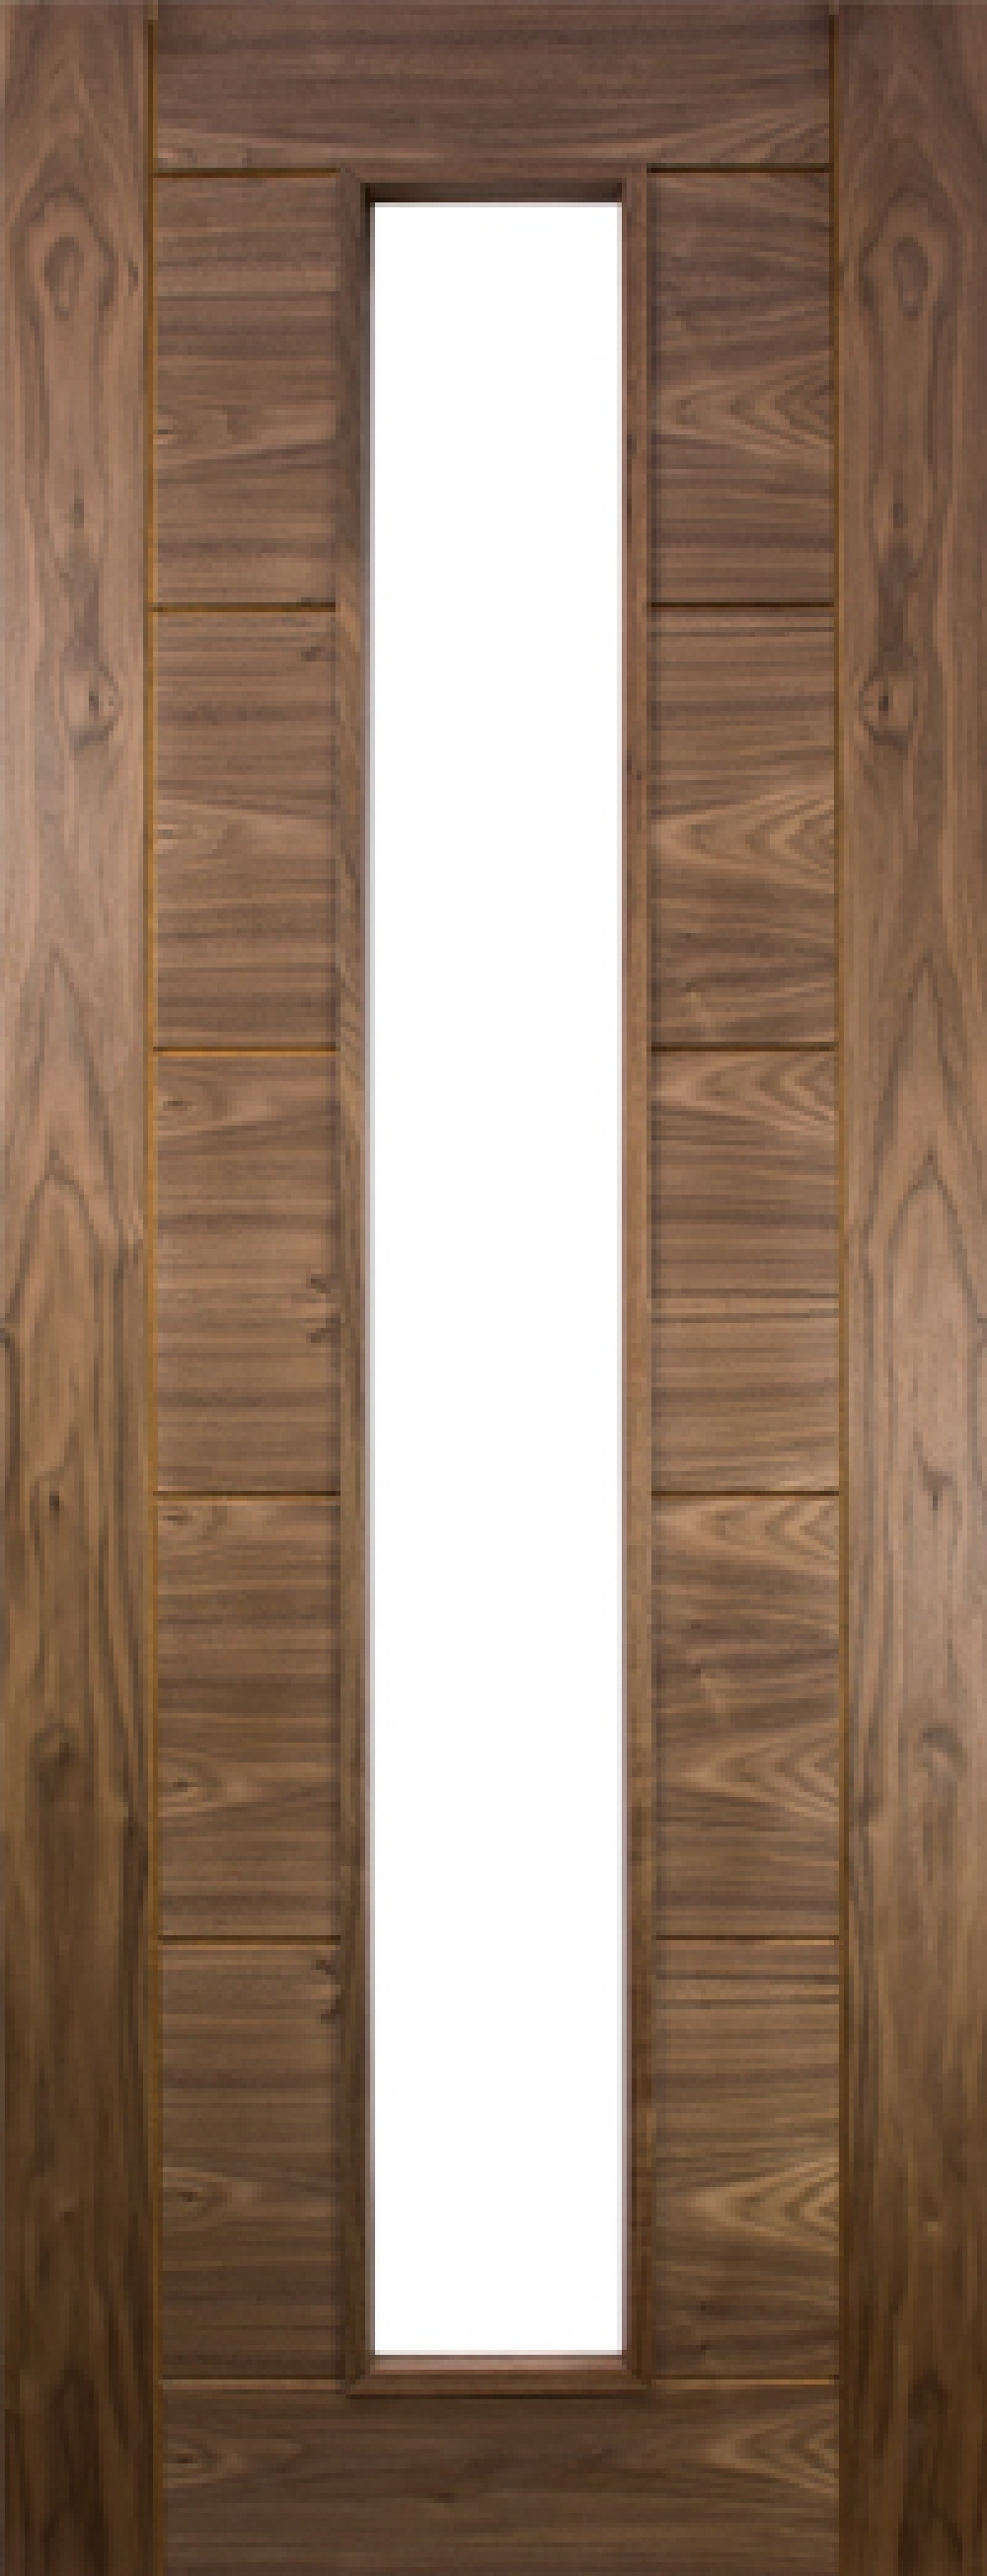 Seville Walnut Unglazed Door - Prefinished